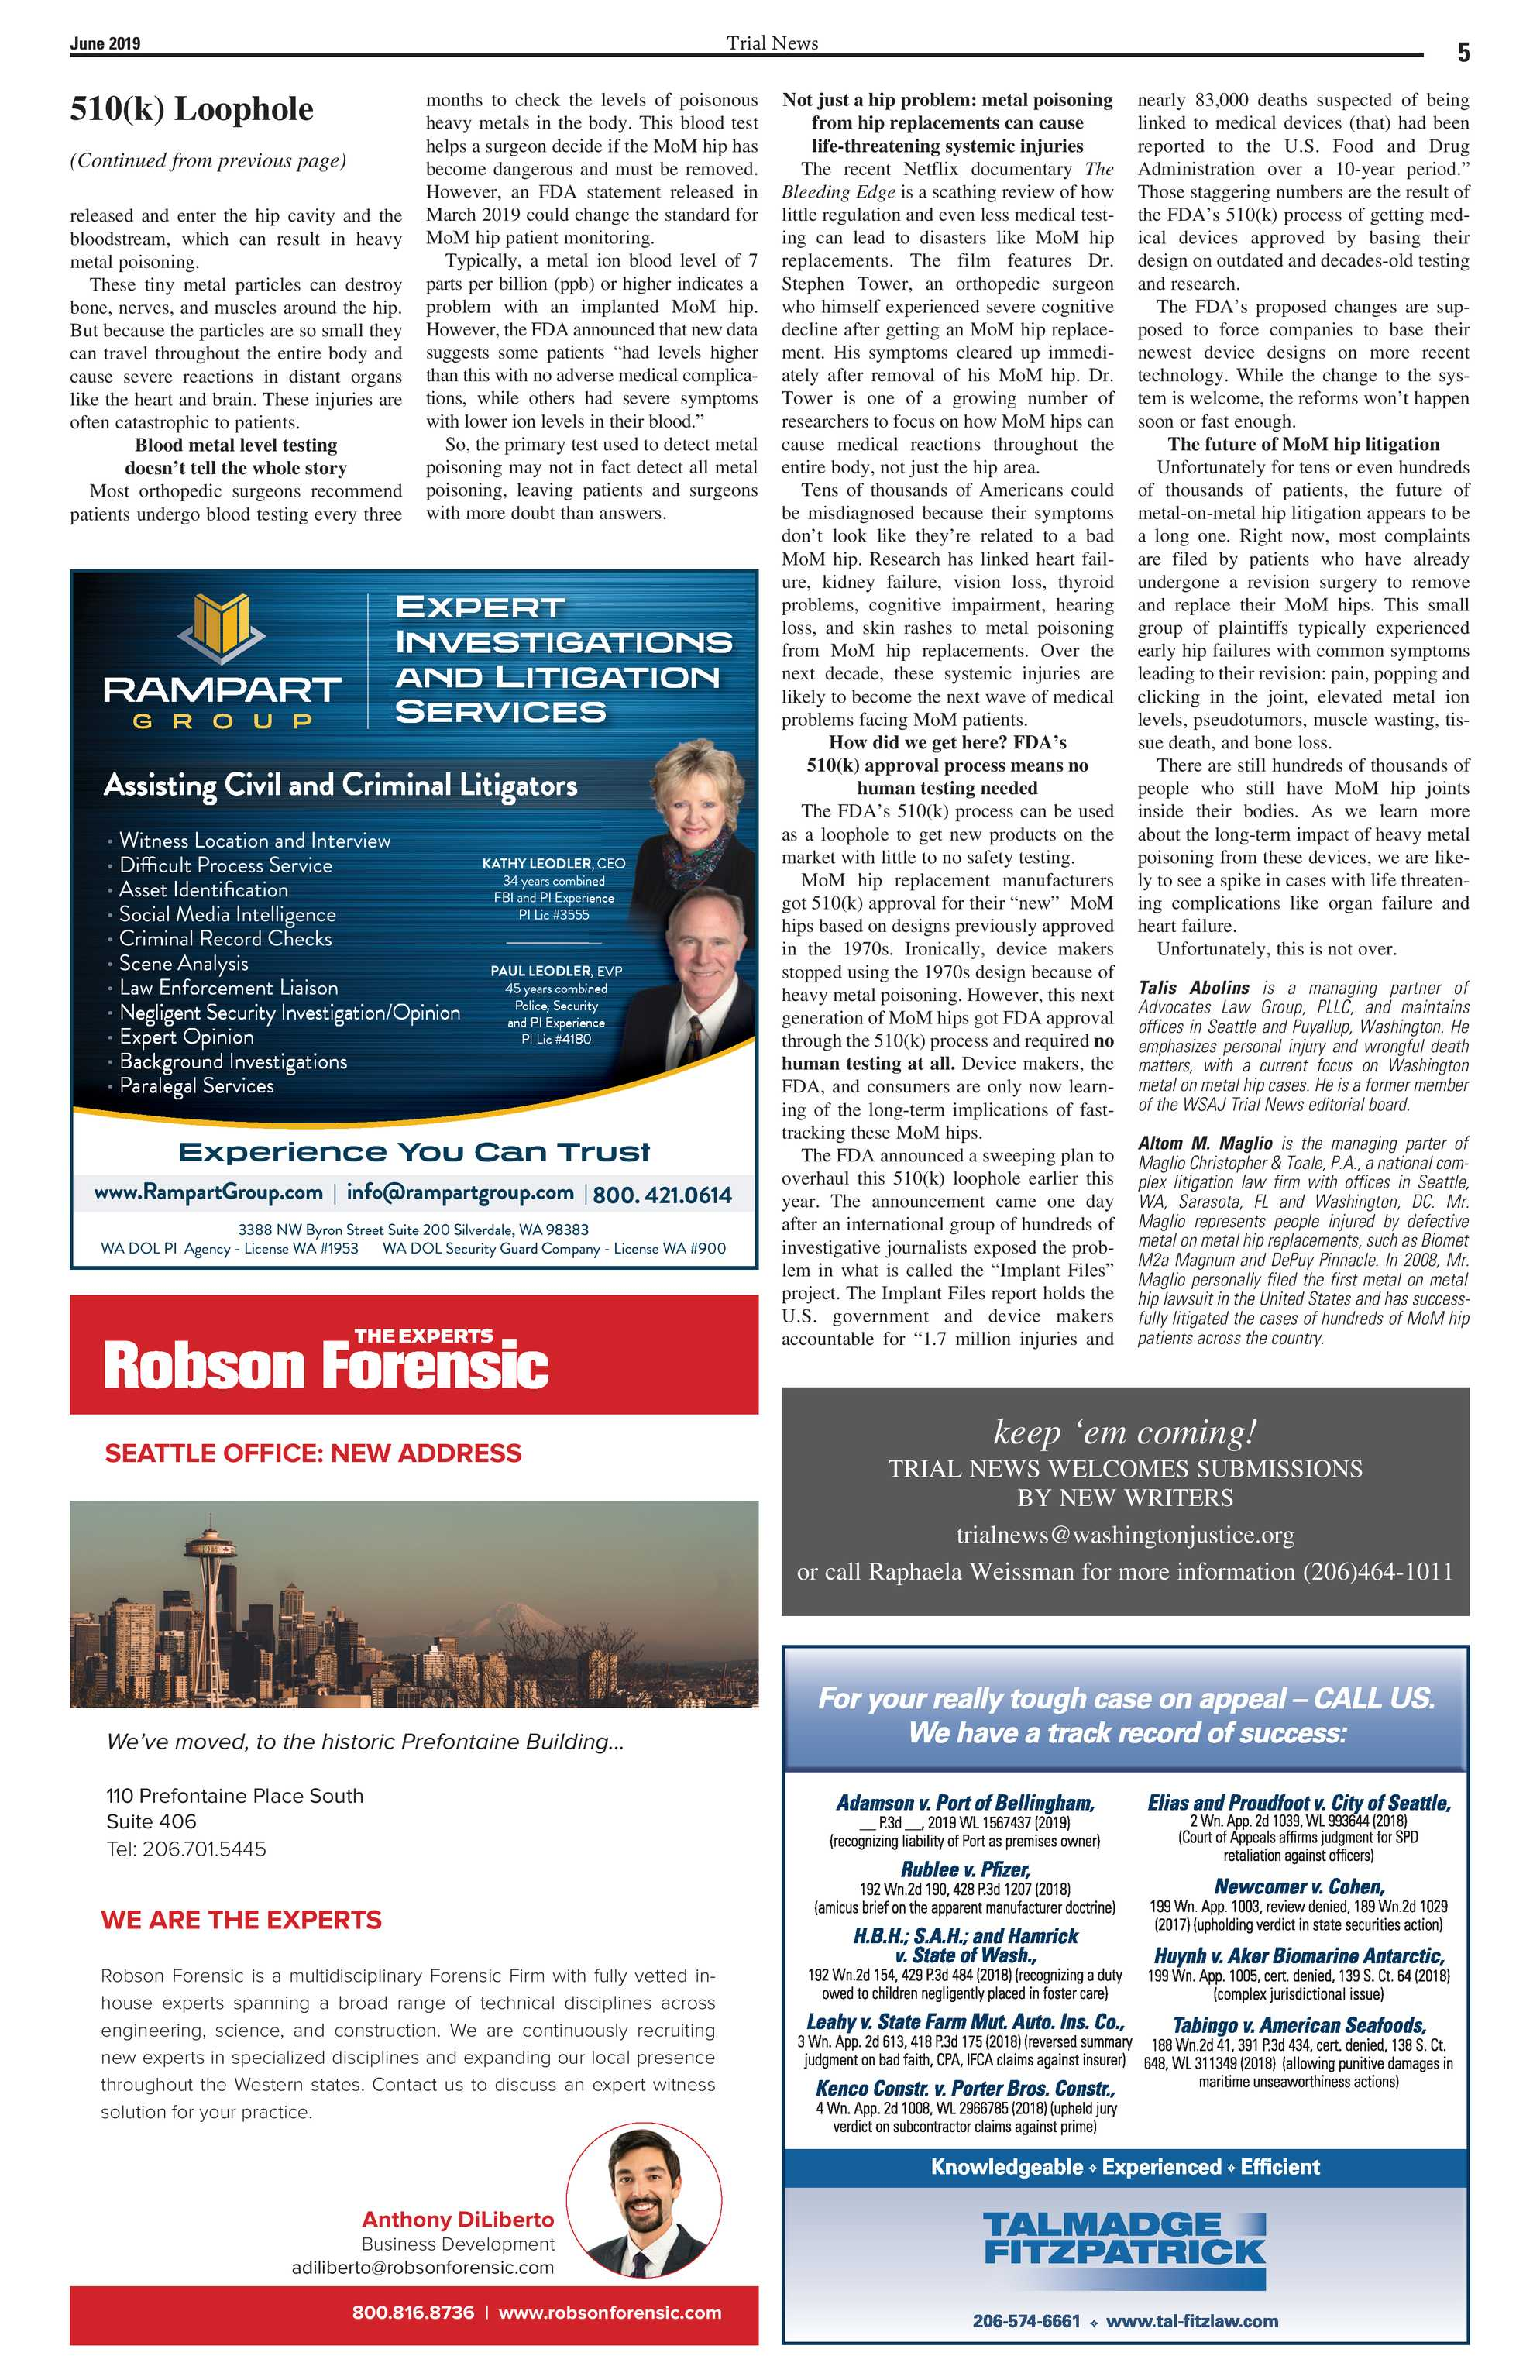 Trial News - June 2019 - page 4